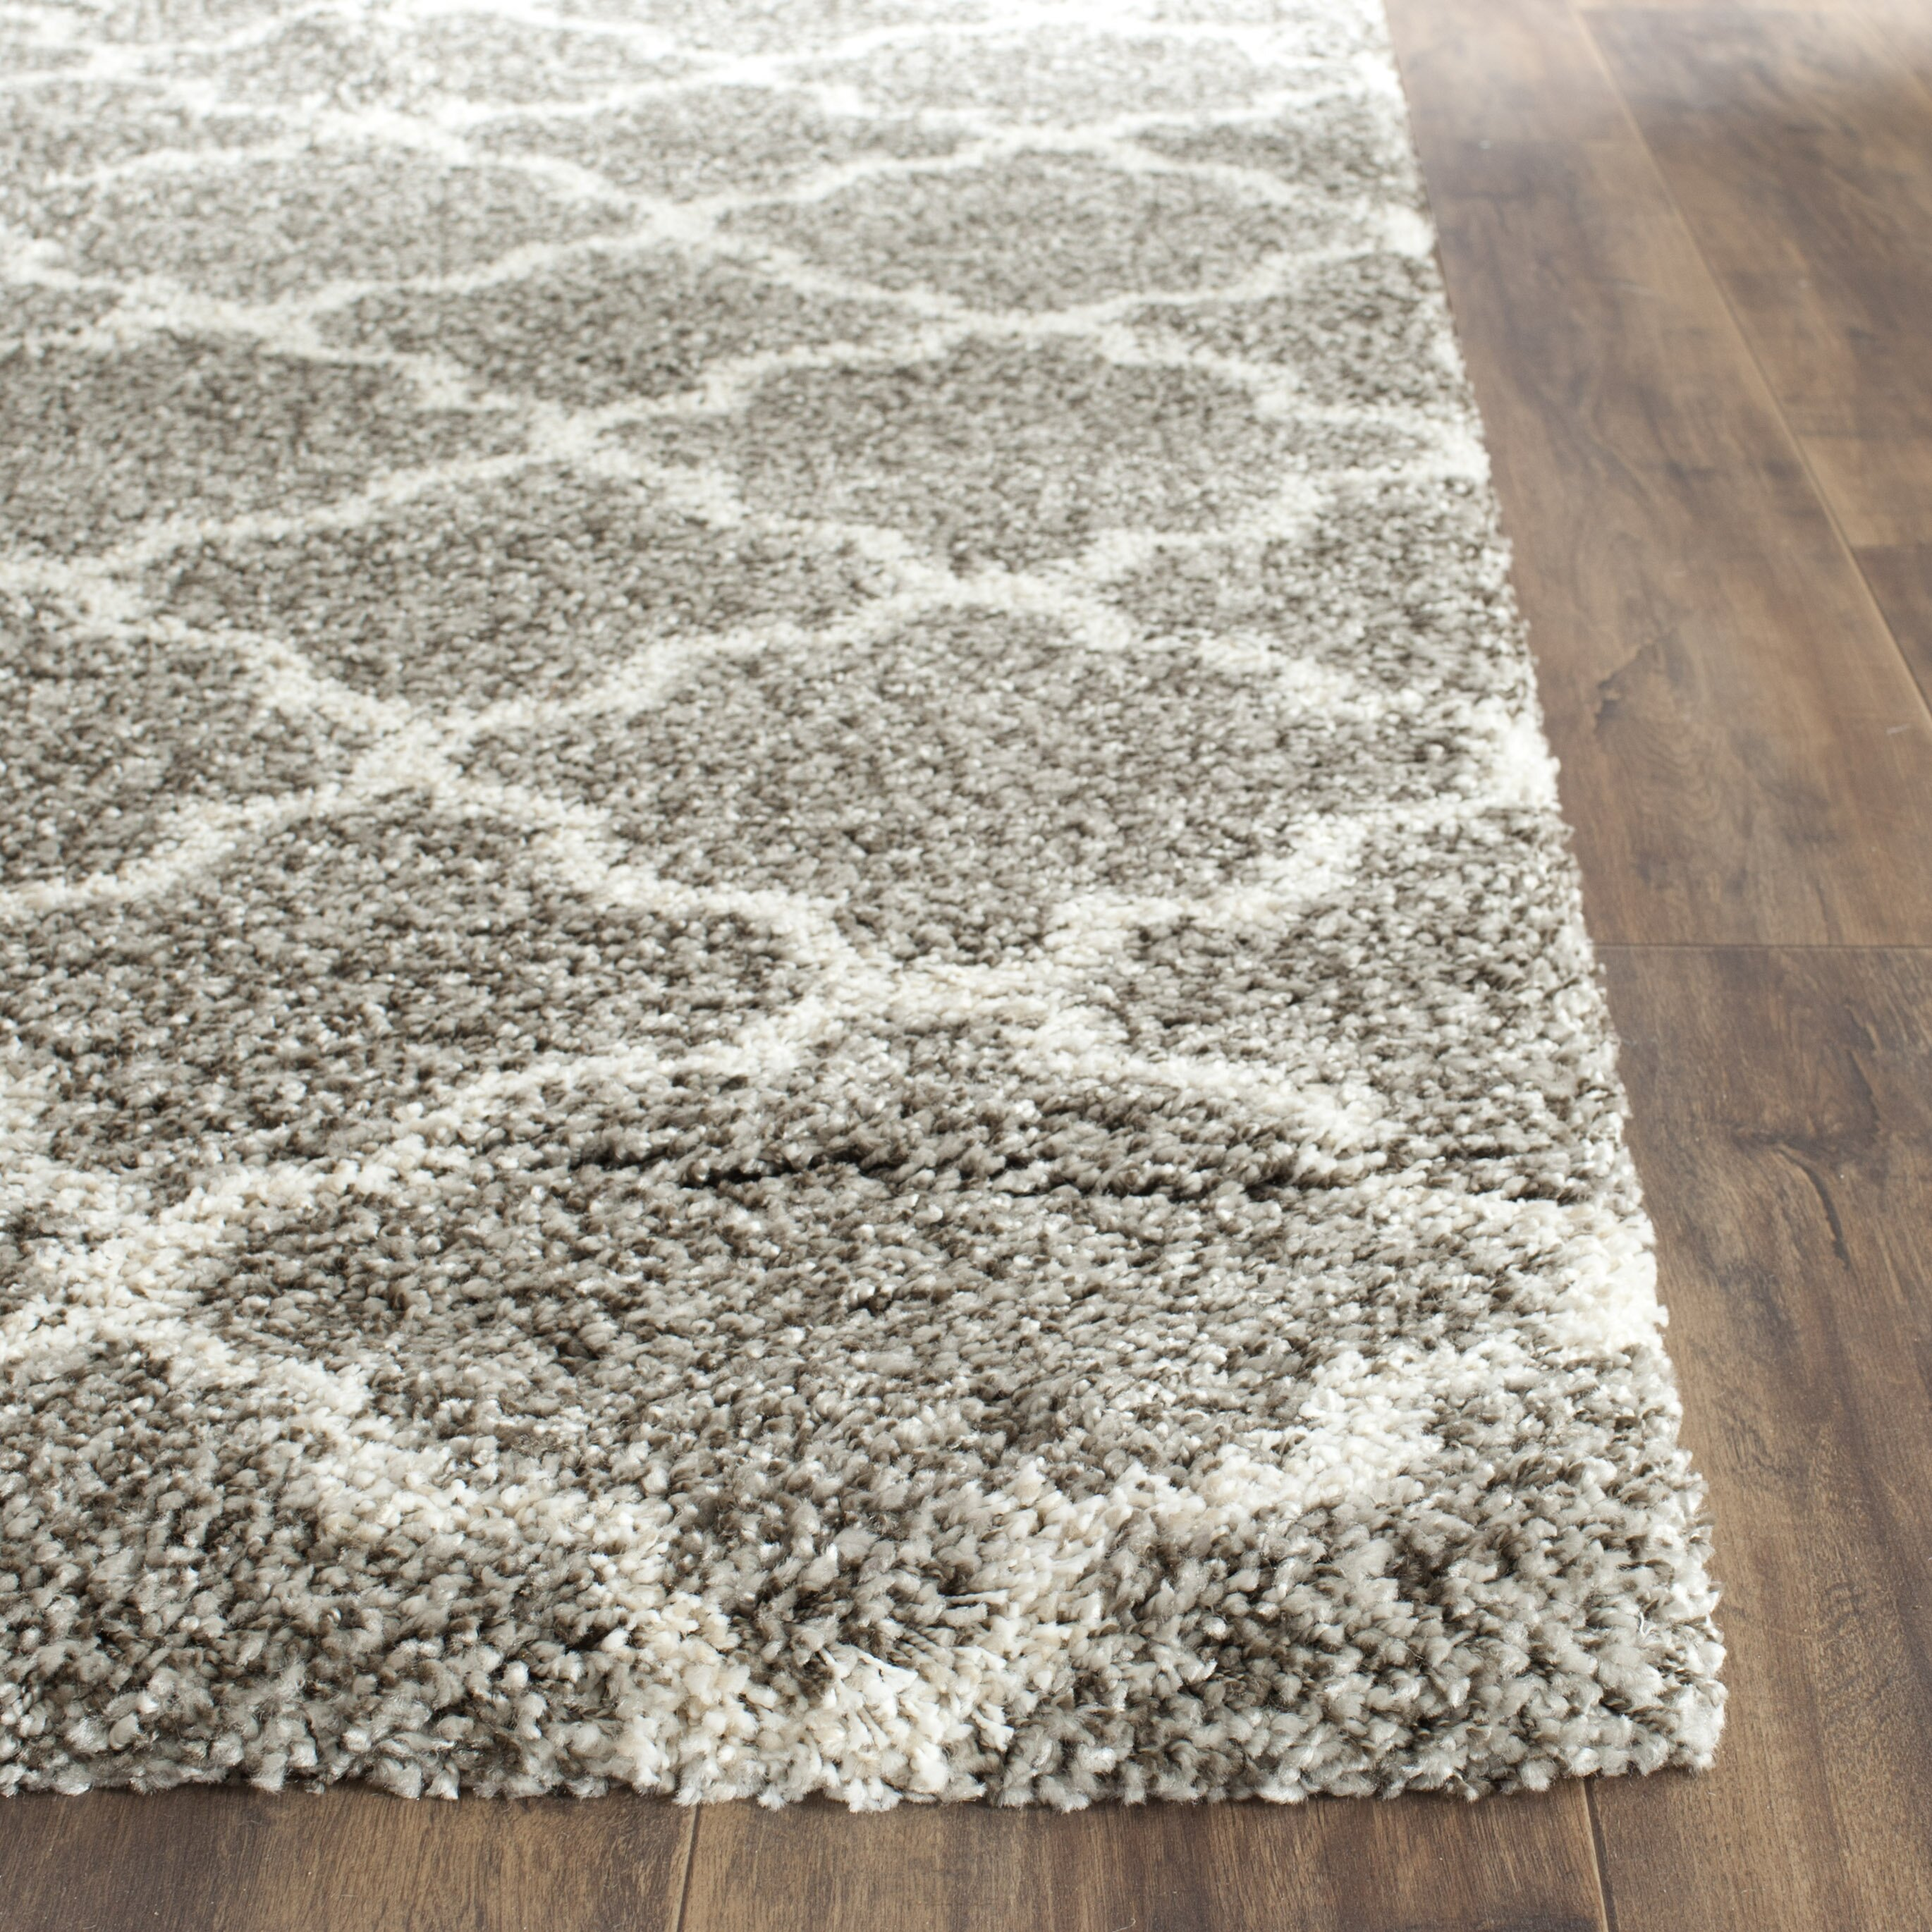 Safavieh Hudson Shag Gray Ivory Area Rug amp Reviews Wayfair : Safavieh Hudson Shag Gray Ivory Area Rug SGH282B from www.wayfair.com size 2740 x 2740 jpeg 1584kB